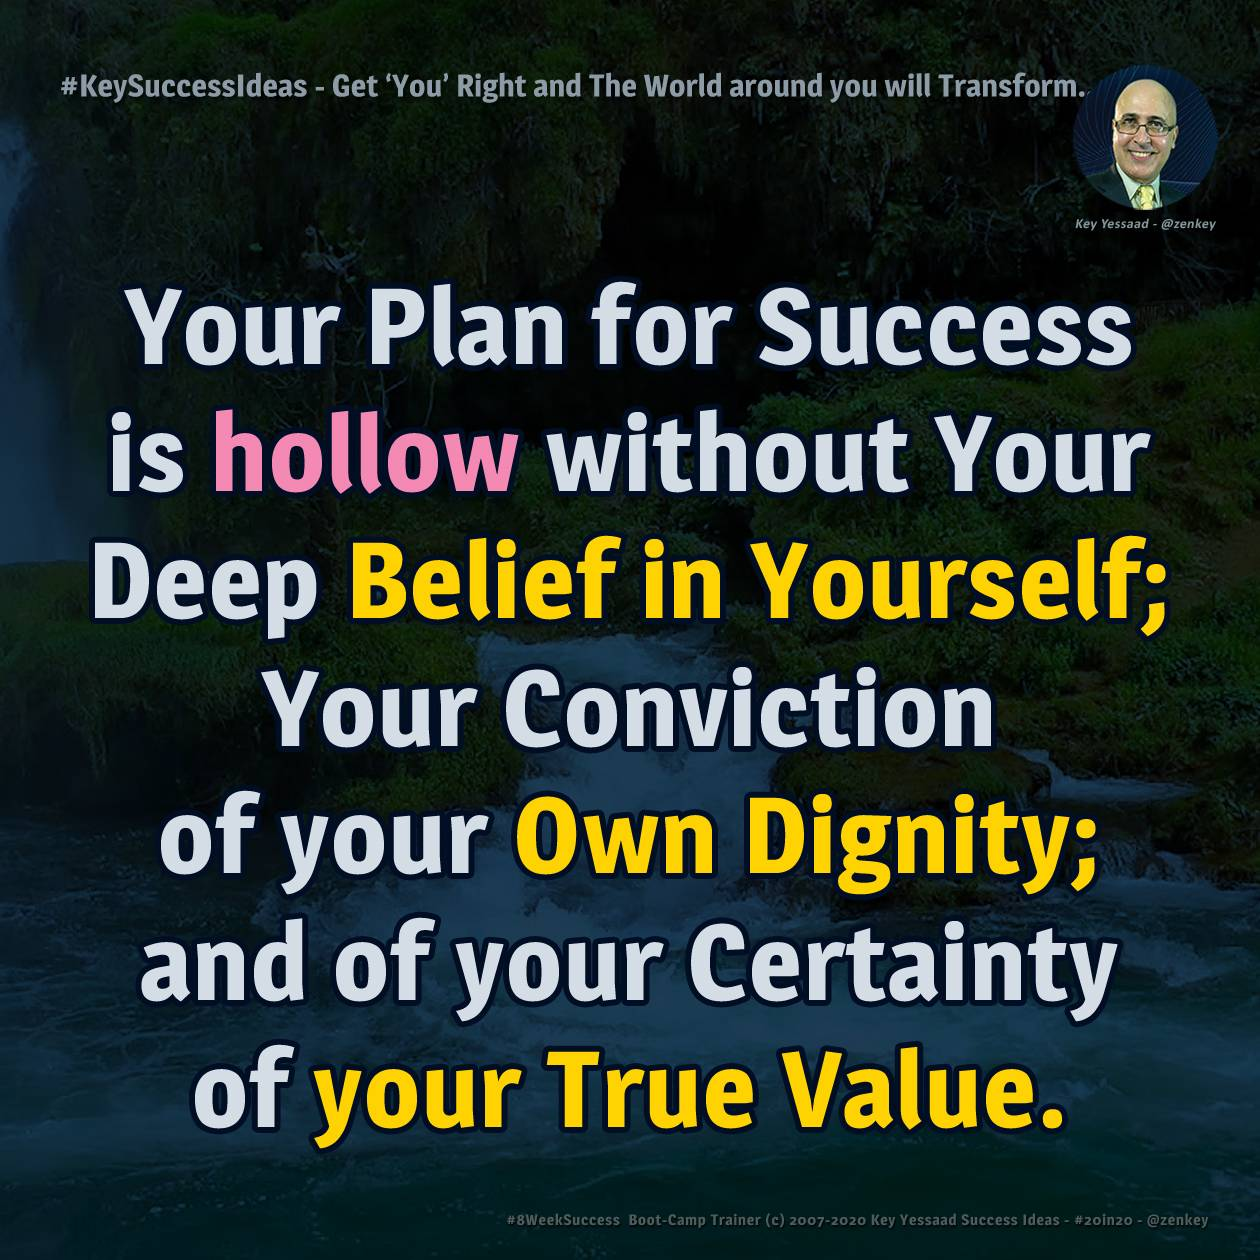 Get 'You' Right and The World around you will Transform... - #KeySuccessIdeas